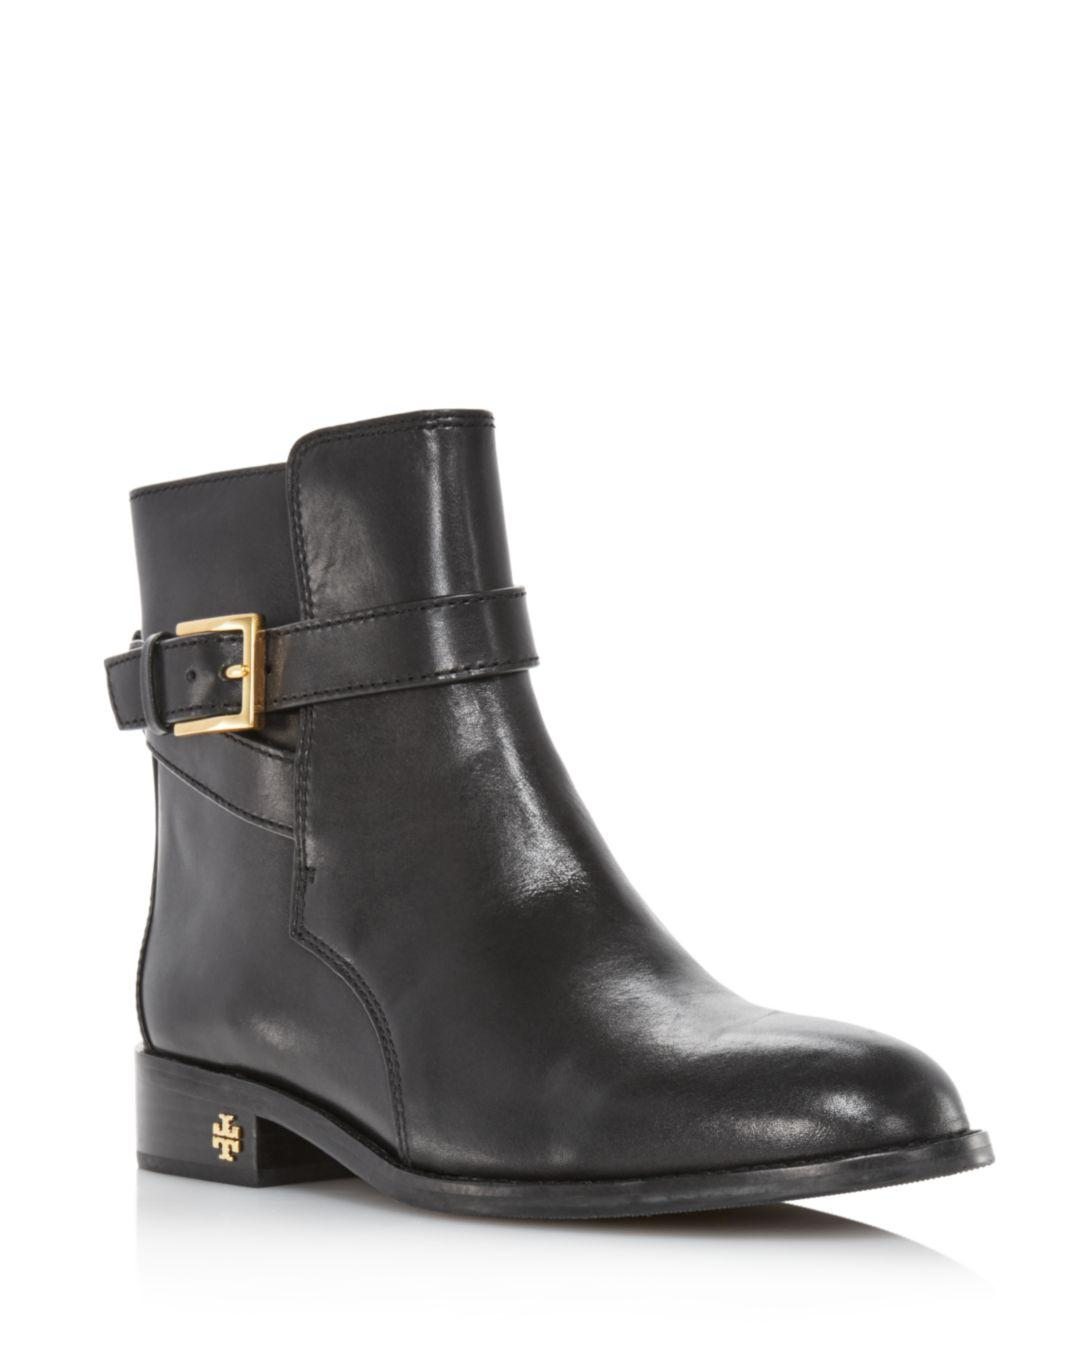 d106ca9e2 Lyst - Tory Burch Women s Brooke Leather Ankle Booties in Black